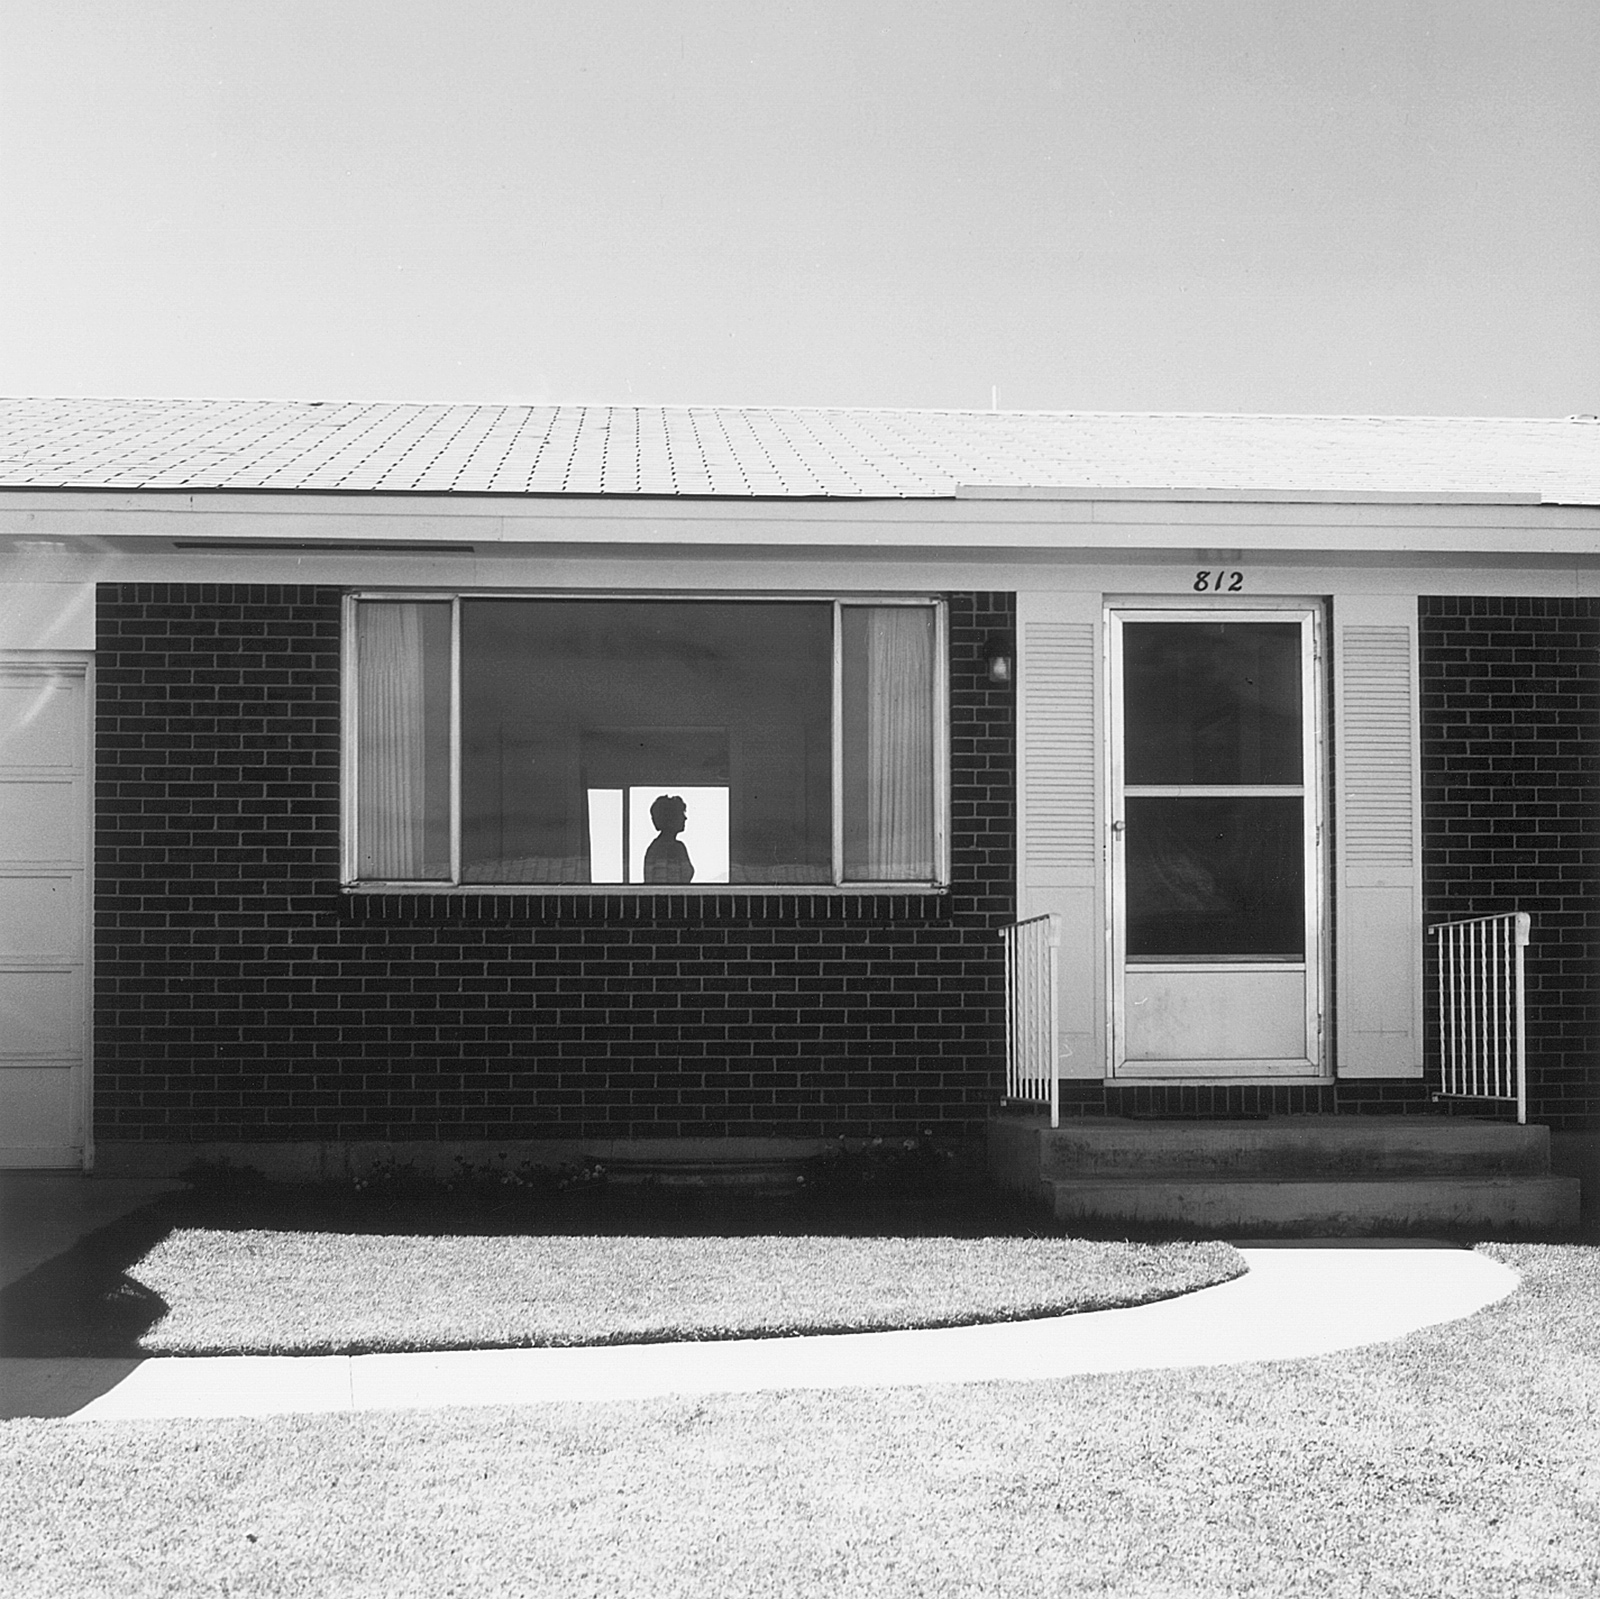 Colorado Springs, Colorado, 1968; photograph by Robert Adams from his 1974 book The New West, to be reissued by Steidl this April. His exhibition 'Around the House and Other New Work' is on view at the Fraenkel Gallery, San Francisco, March 10–April 23, with a monograph published by the gallery.